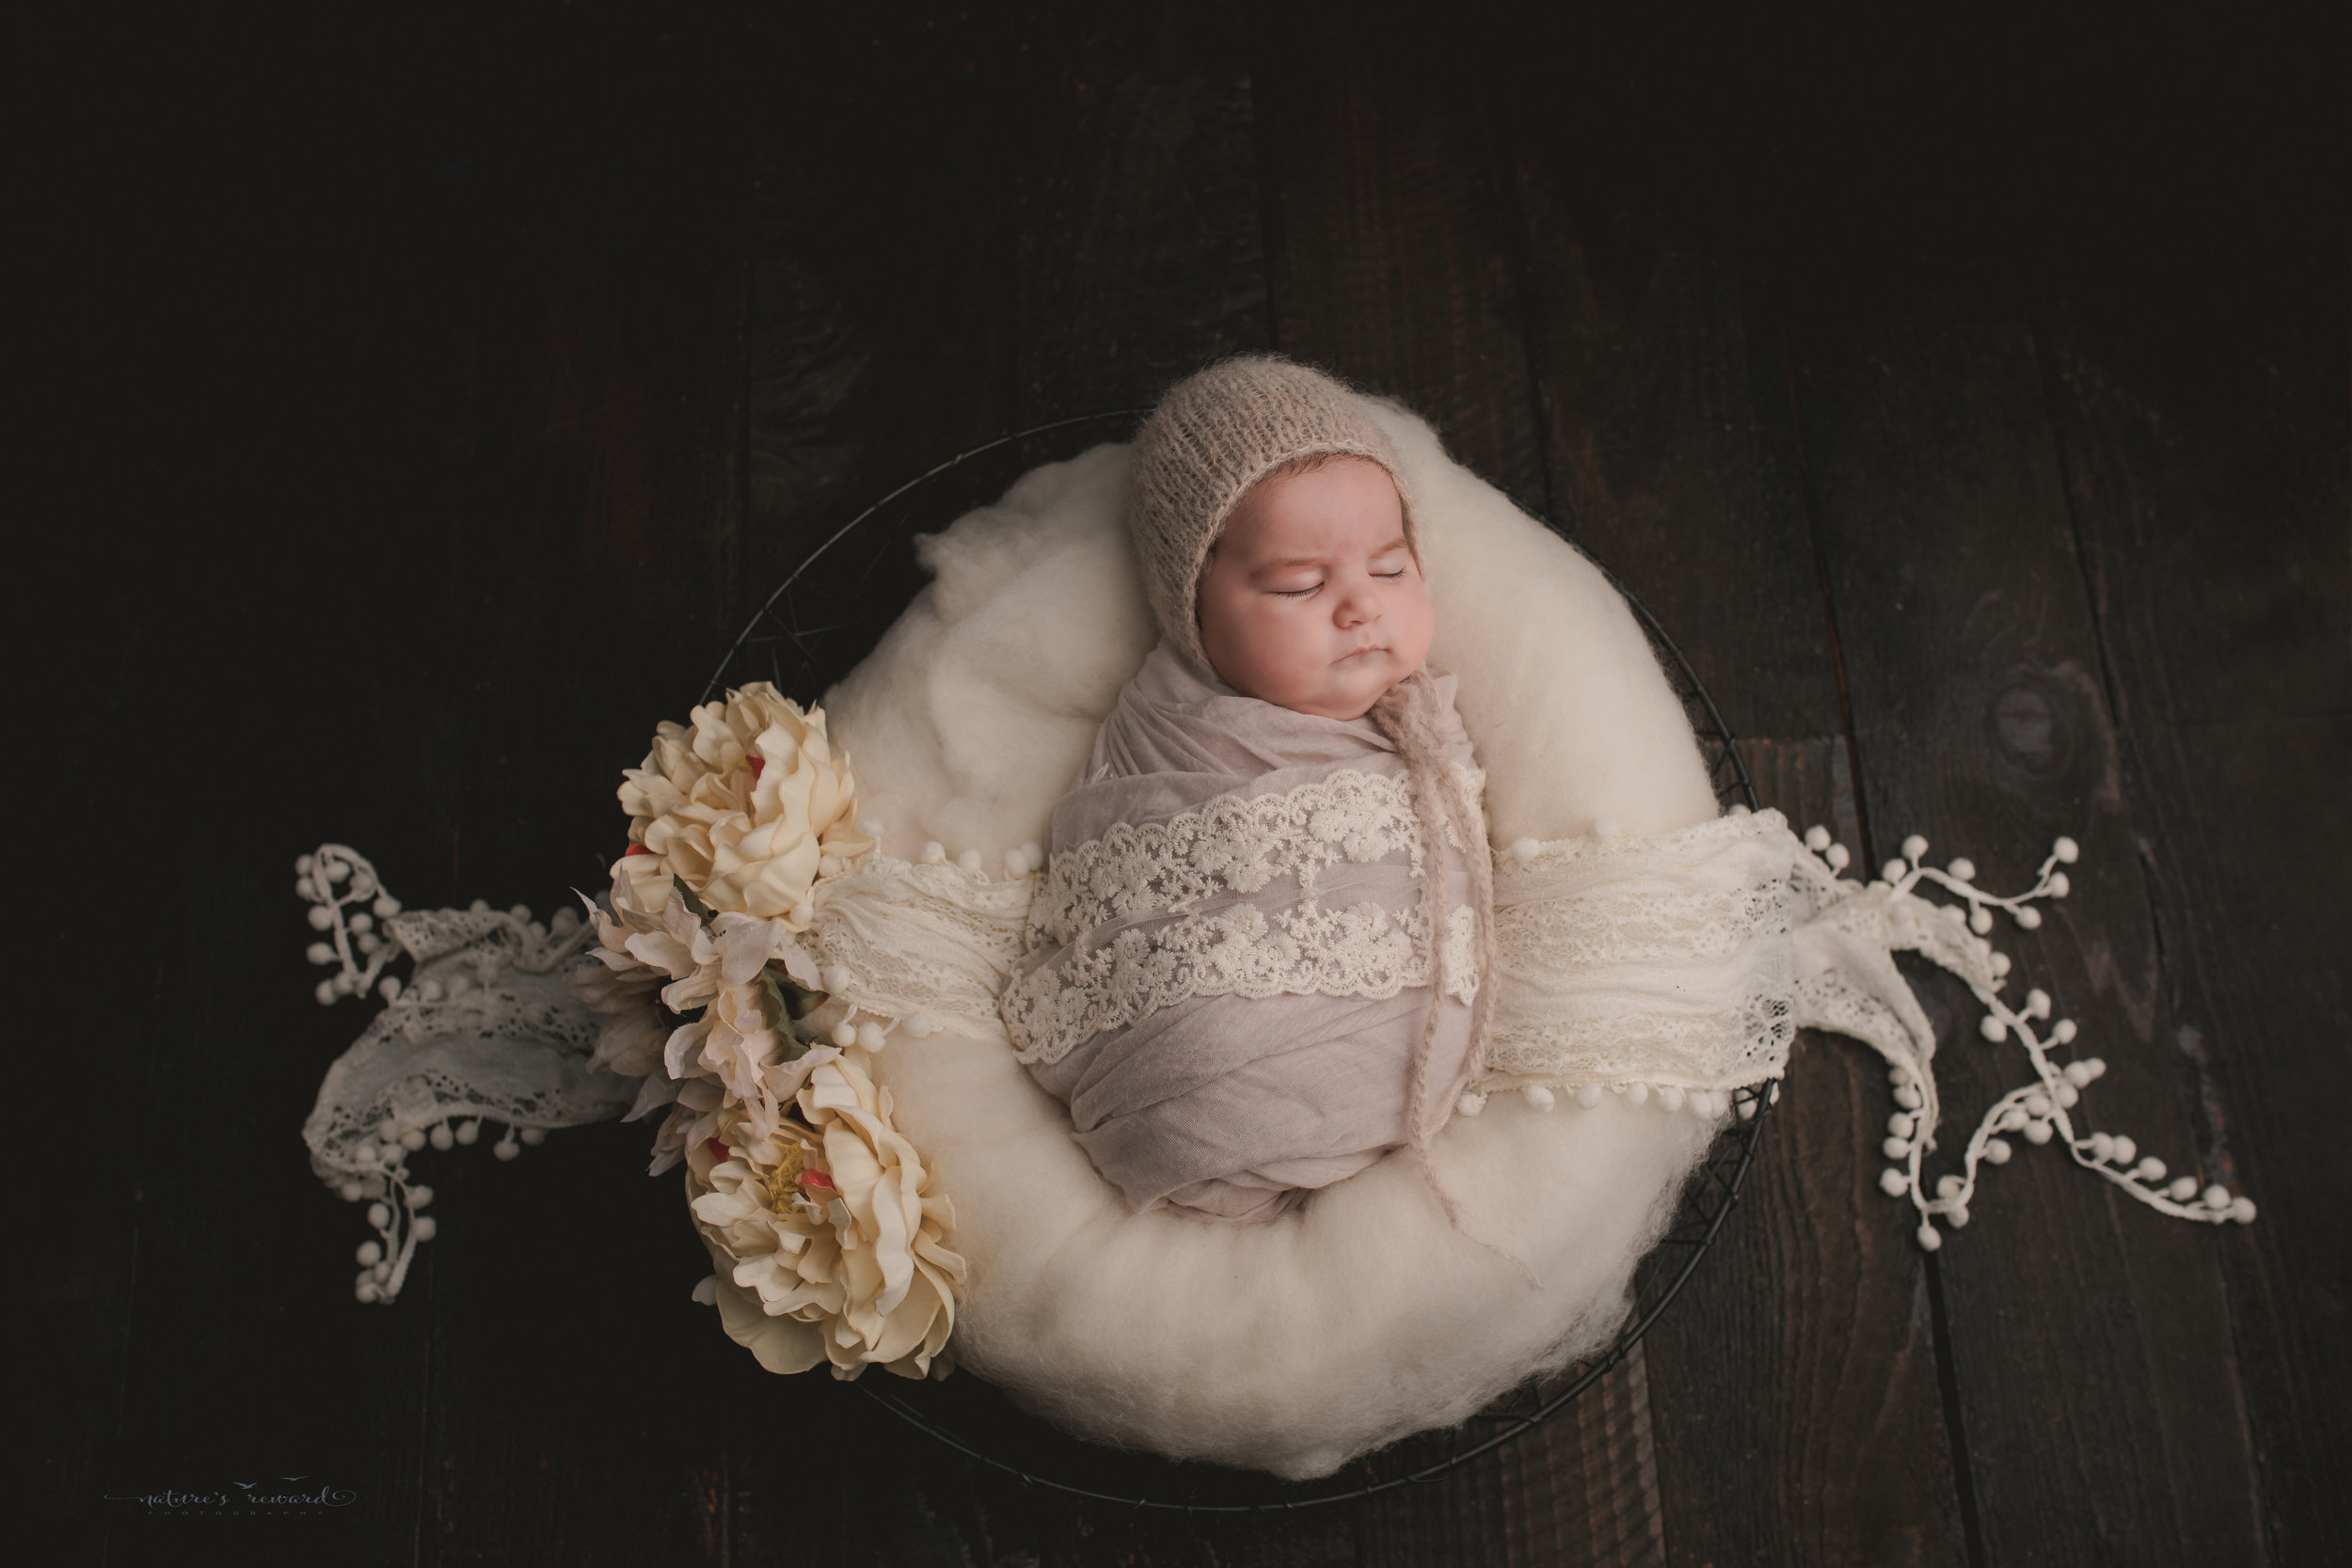 Dreaming, swaddled  in lace and fluff on a wood floor, a newborn portrait by Nature's Reward Photography